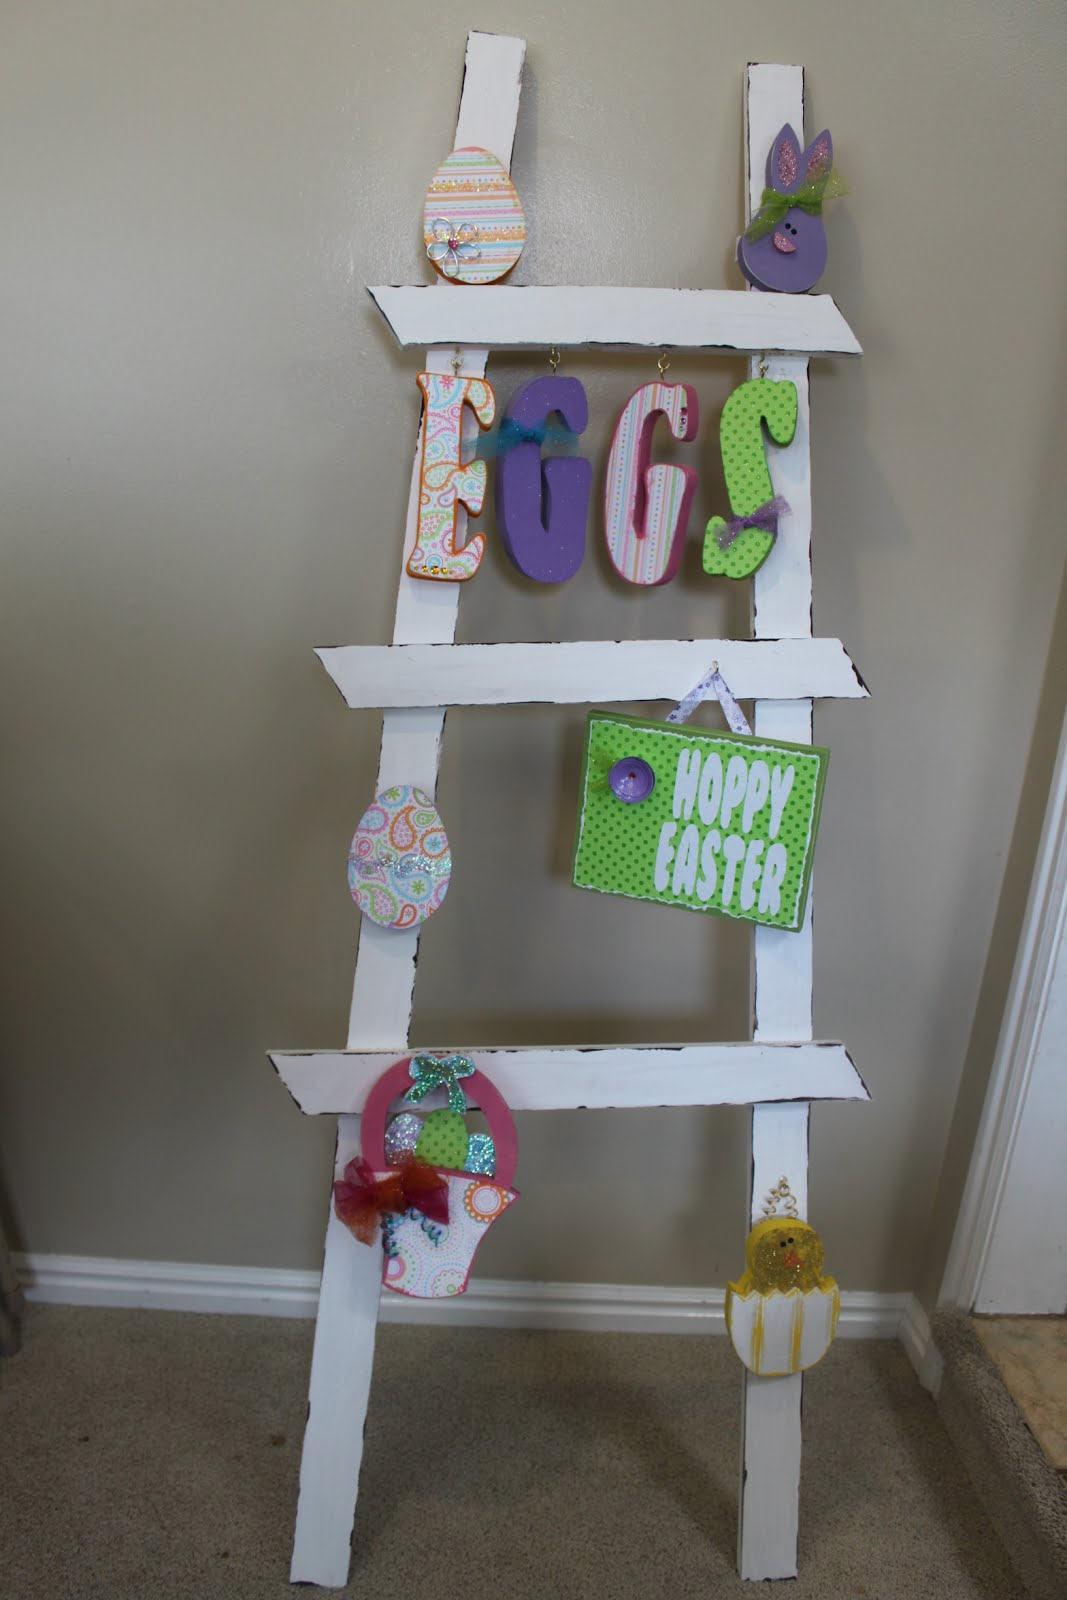 Crafty wood cutouts shapes keeping it simple crafts the wood comes unfinished the ladder was already put together nice huh sciox Images